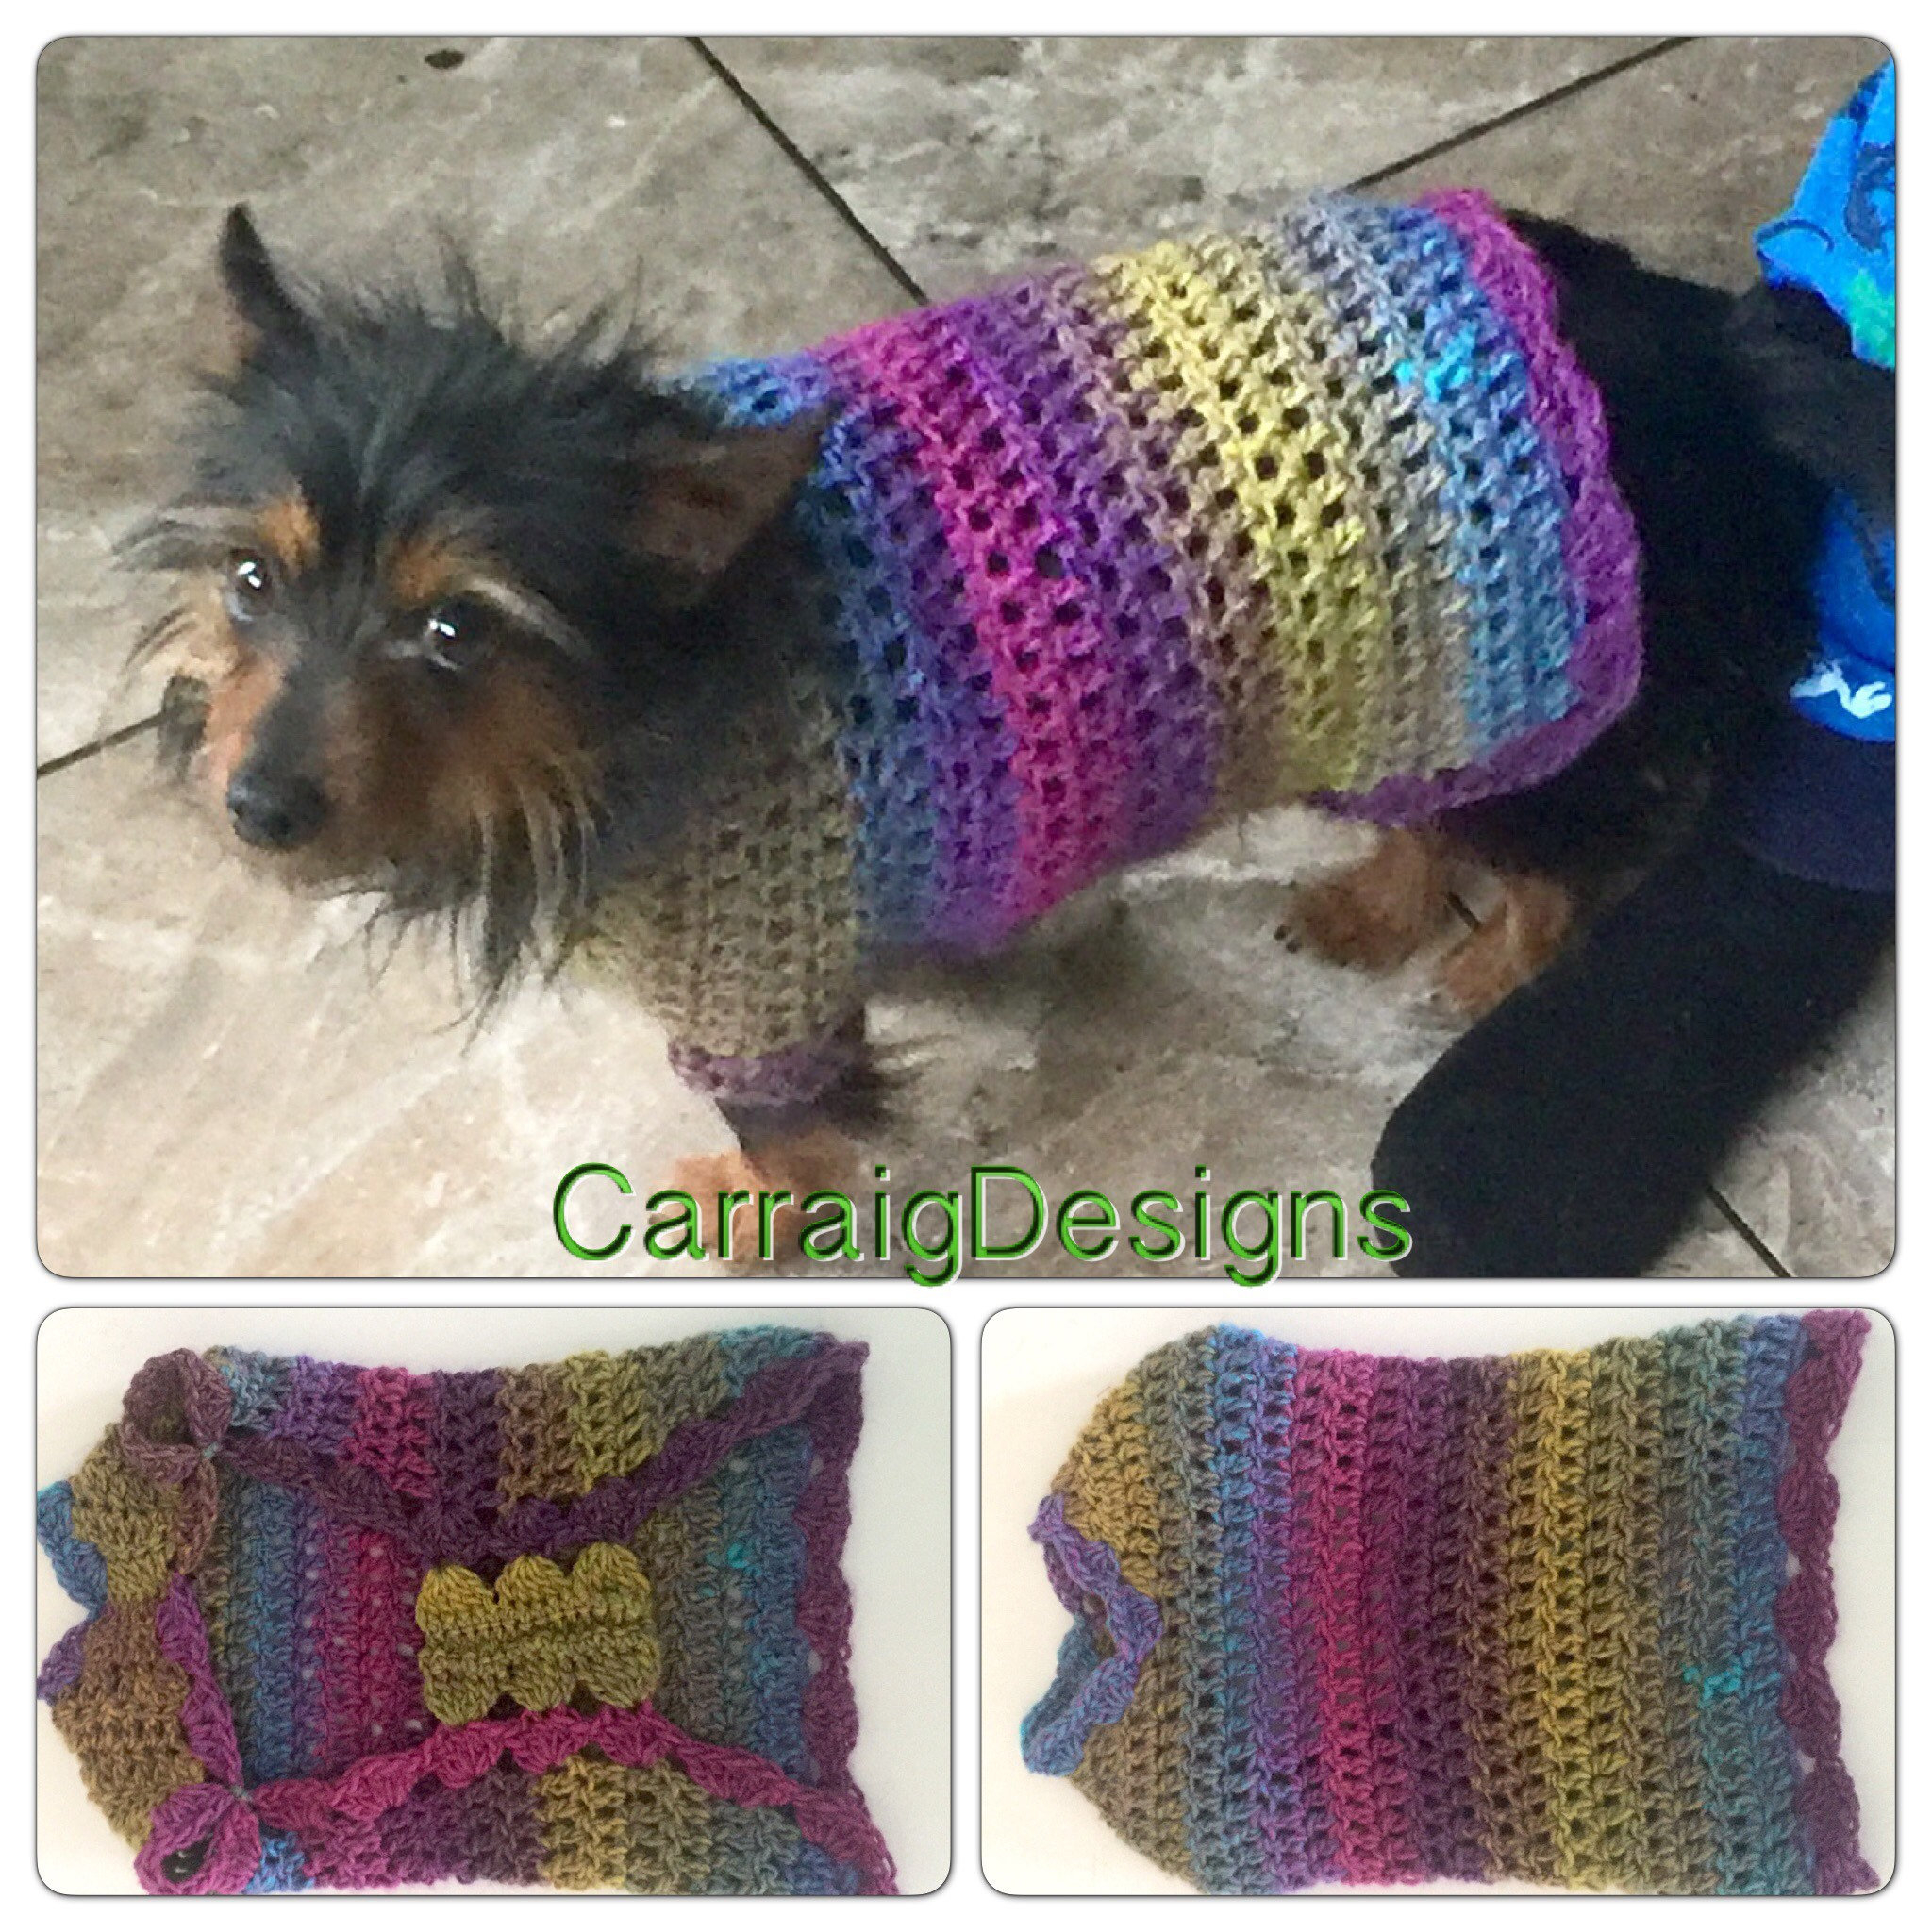 Small Dog Coat Knitting Pattern Free Small Dog Hippy Coat Sweater Costume Dress Up Unique Designer Hand Crochet Knit Hippie Boho Rainbow Gift Accessories Puppy Clothes Matching